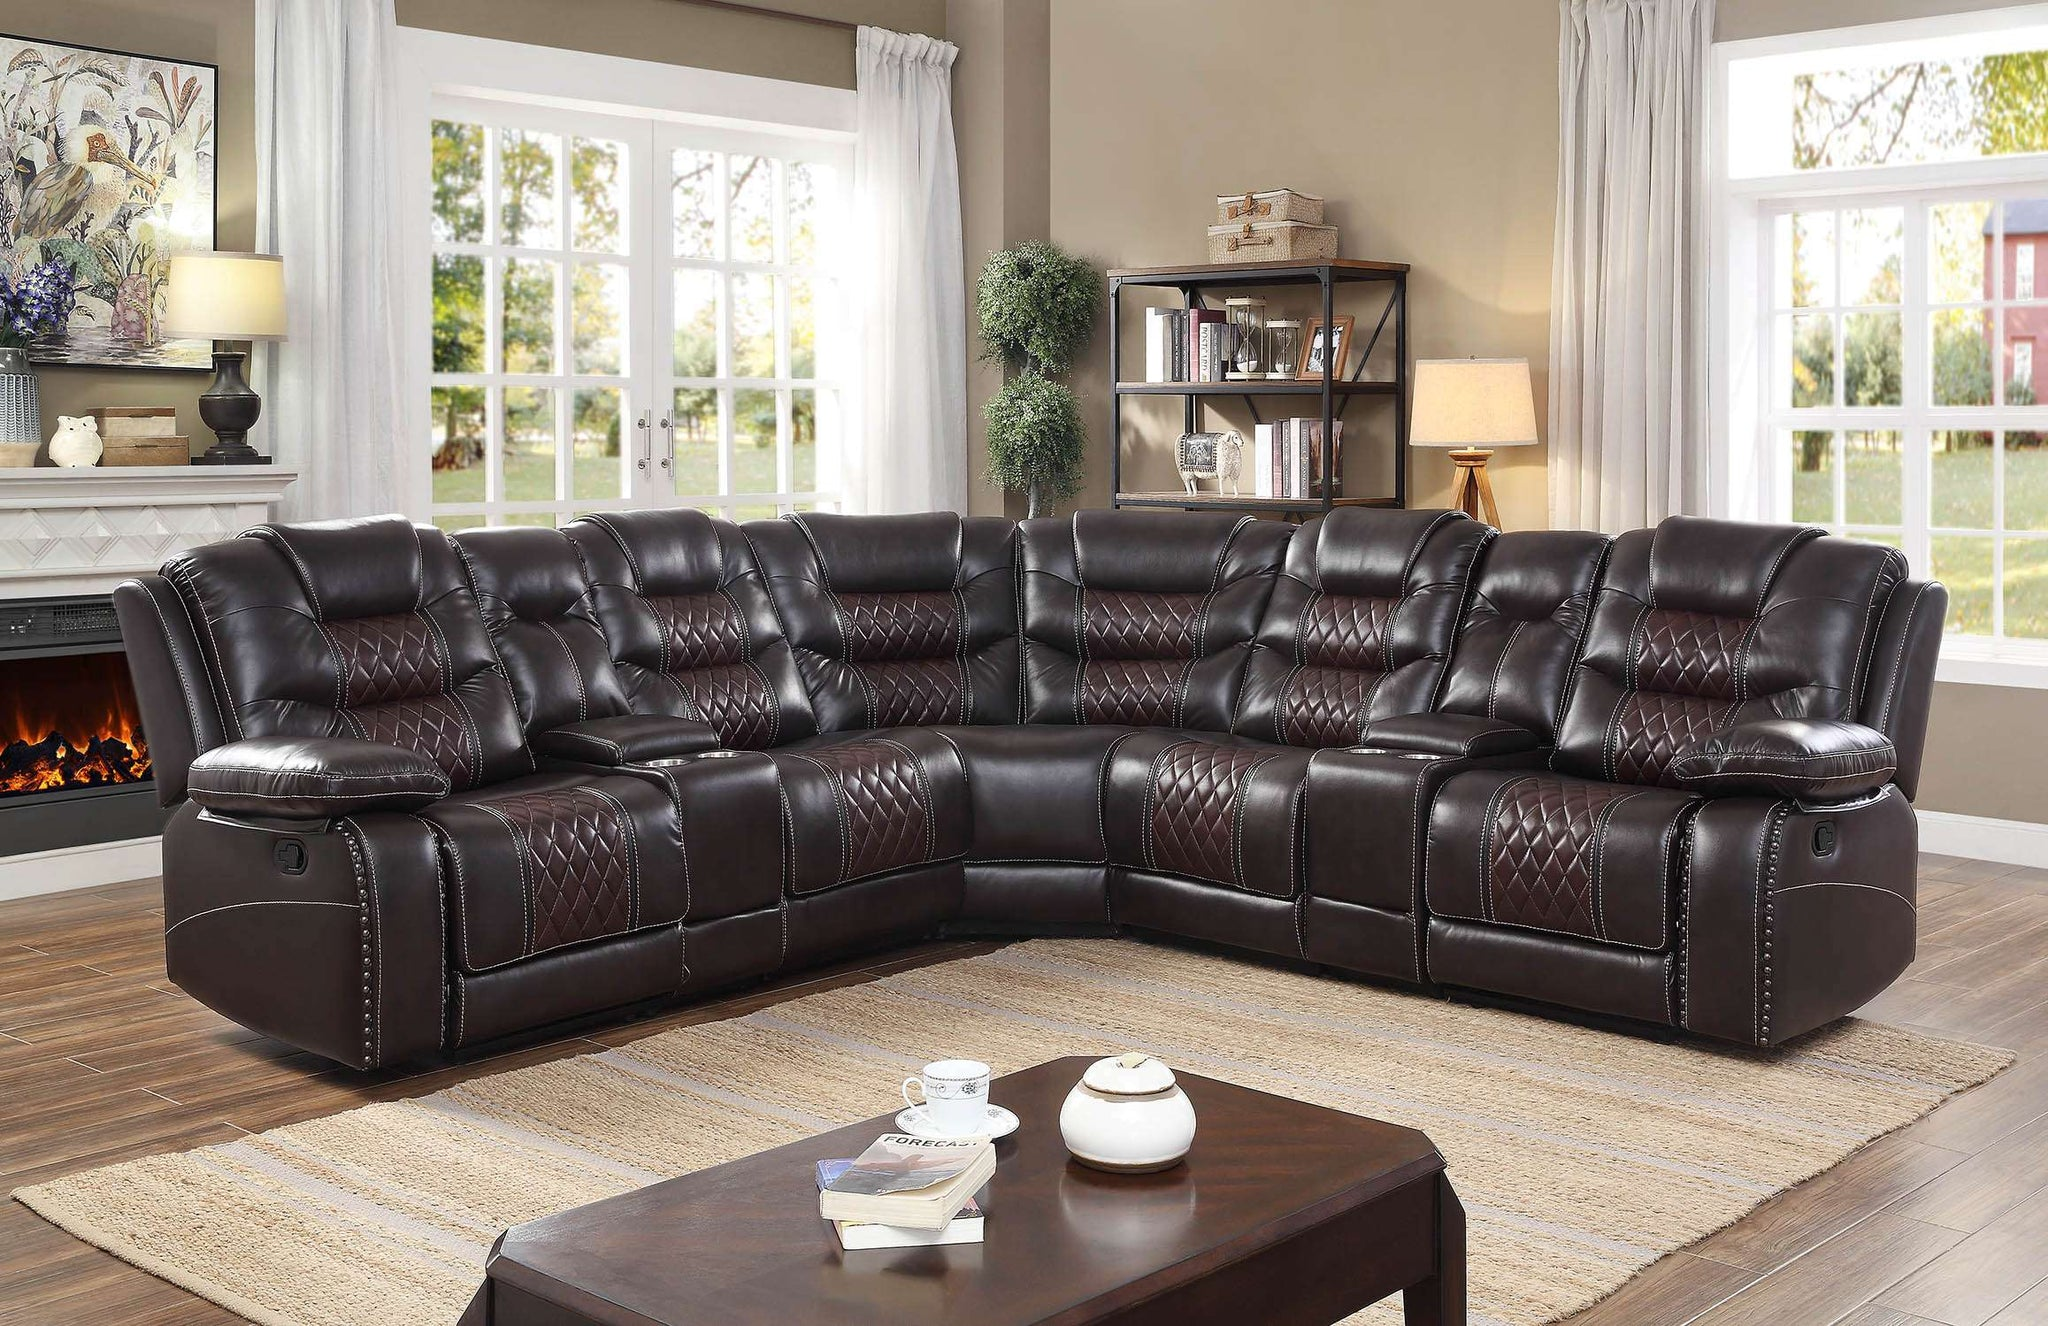 Venetian Reclining Sectional - Richicollection Furniture Warehouse